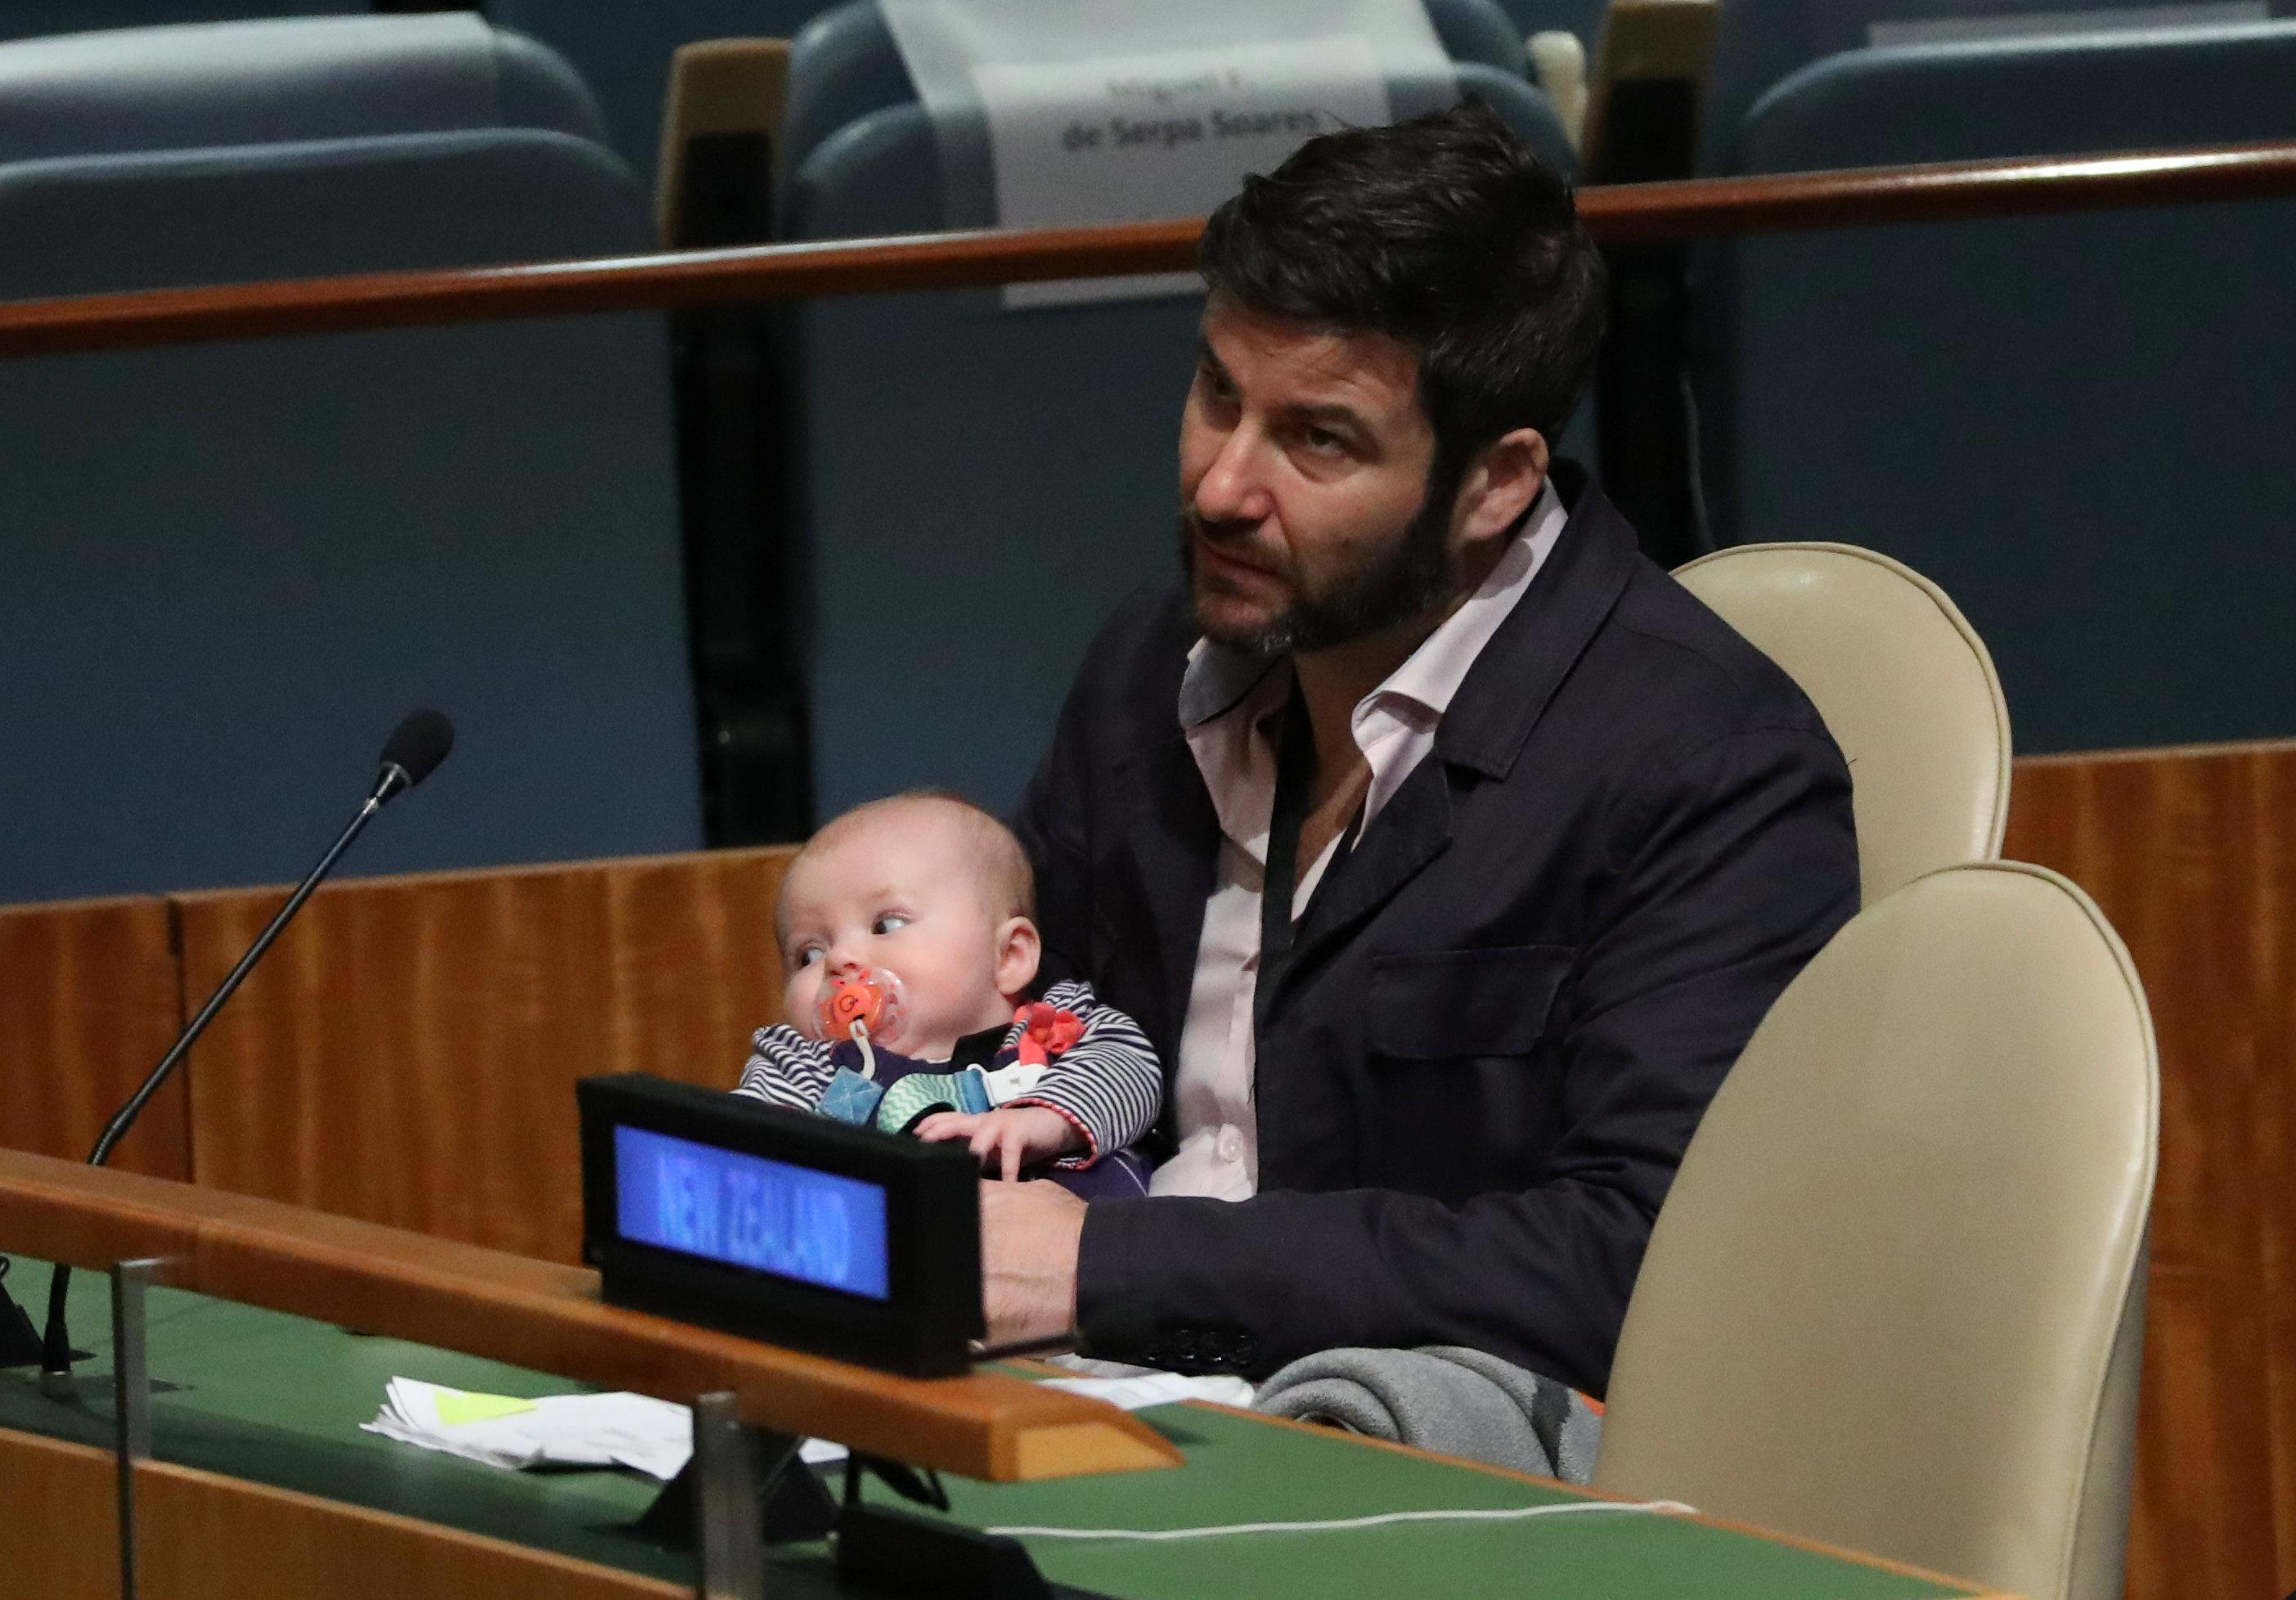 Clarke Gayford, partner to New Zealand Prime Minister Jacinda Ardern holds their baby Neve as Ardern speaks at the Nelson Mandela Peace Summit during the 73rd United Nations General Assembly in New York, U.S., September 24, 2018. Carlo Allegri